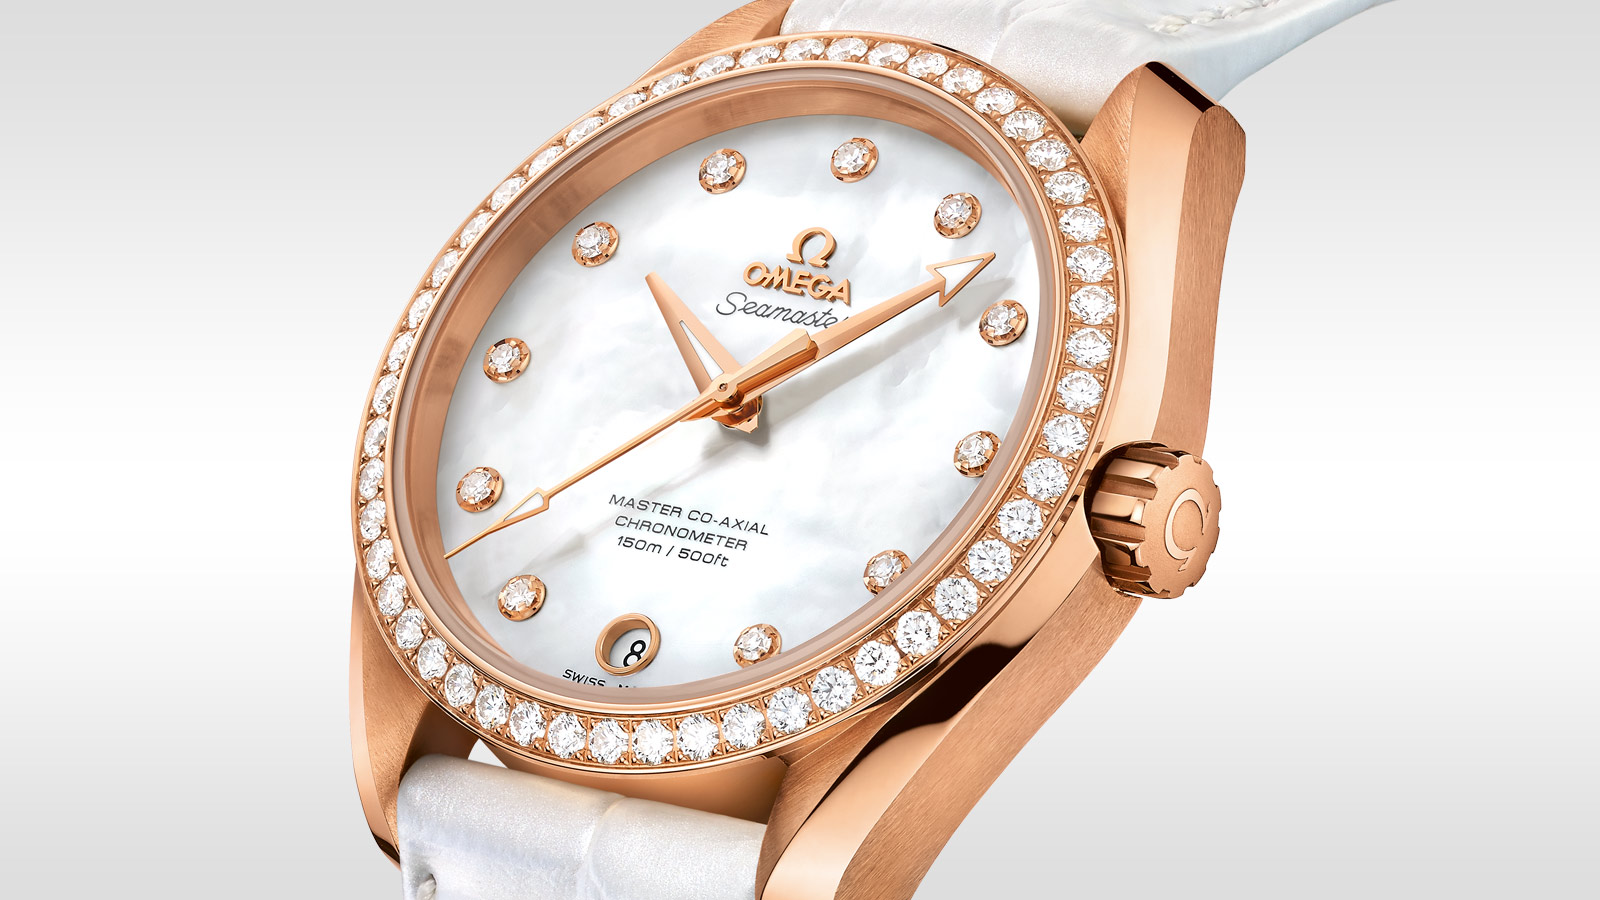 Seamaster アクアテラ 150M Aqua Terra 150M Omega Master Co‑Axial Ladies' 38.5 mm - 231.58.39.21.55.001 - ビュー 2